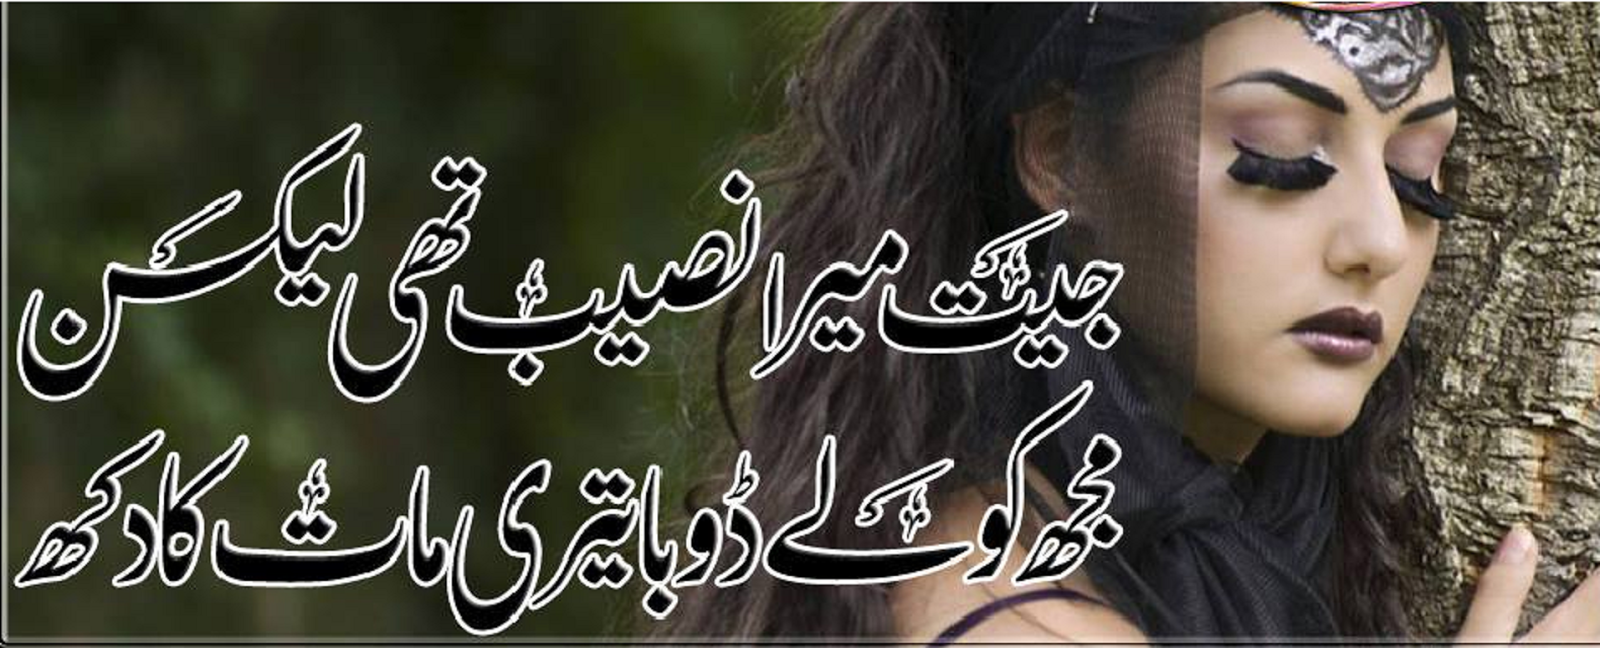 Download HD Wallpapers 3D Beautiful Sad Urdu Poetry HD Wallpapers 1600x648